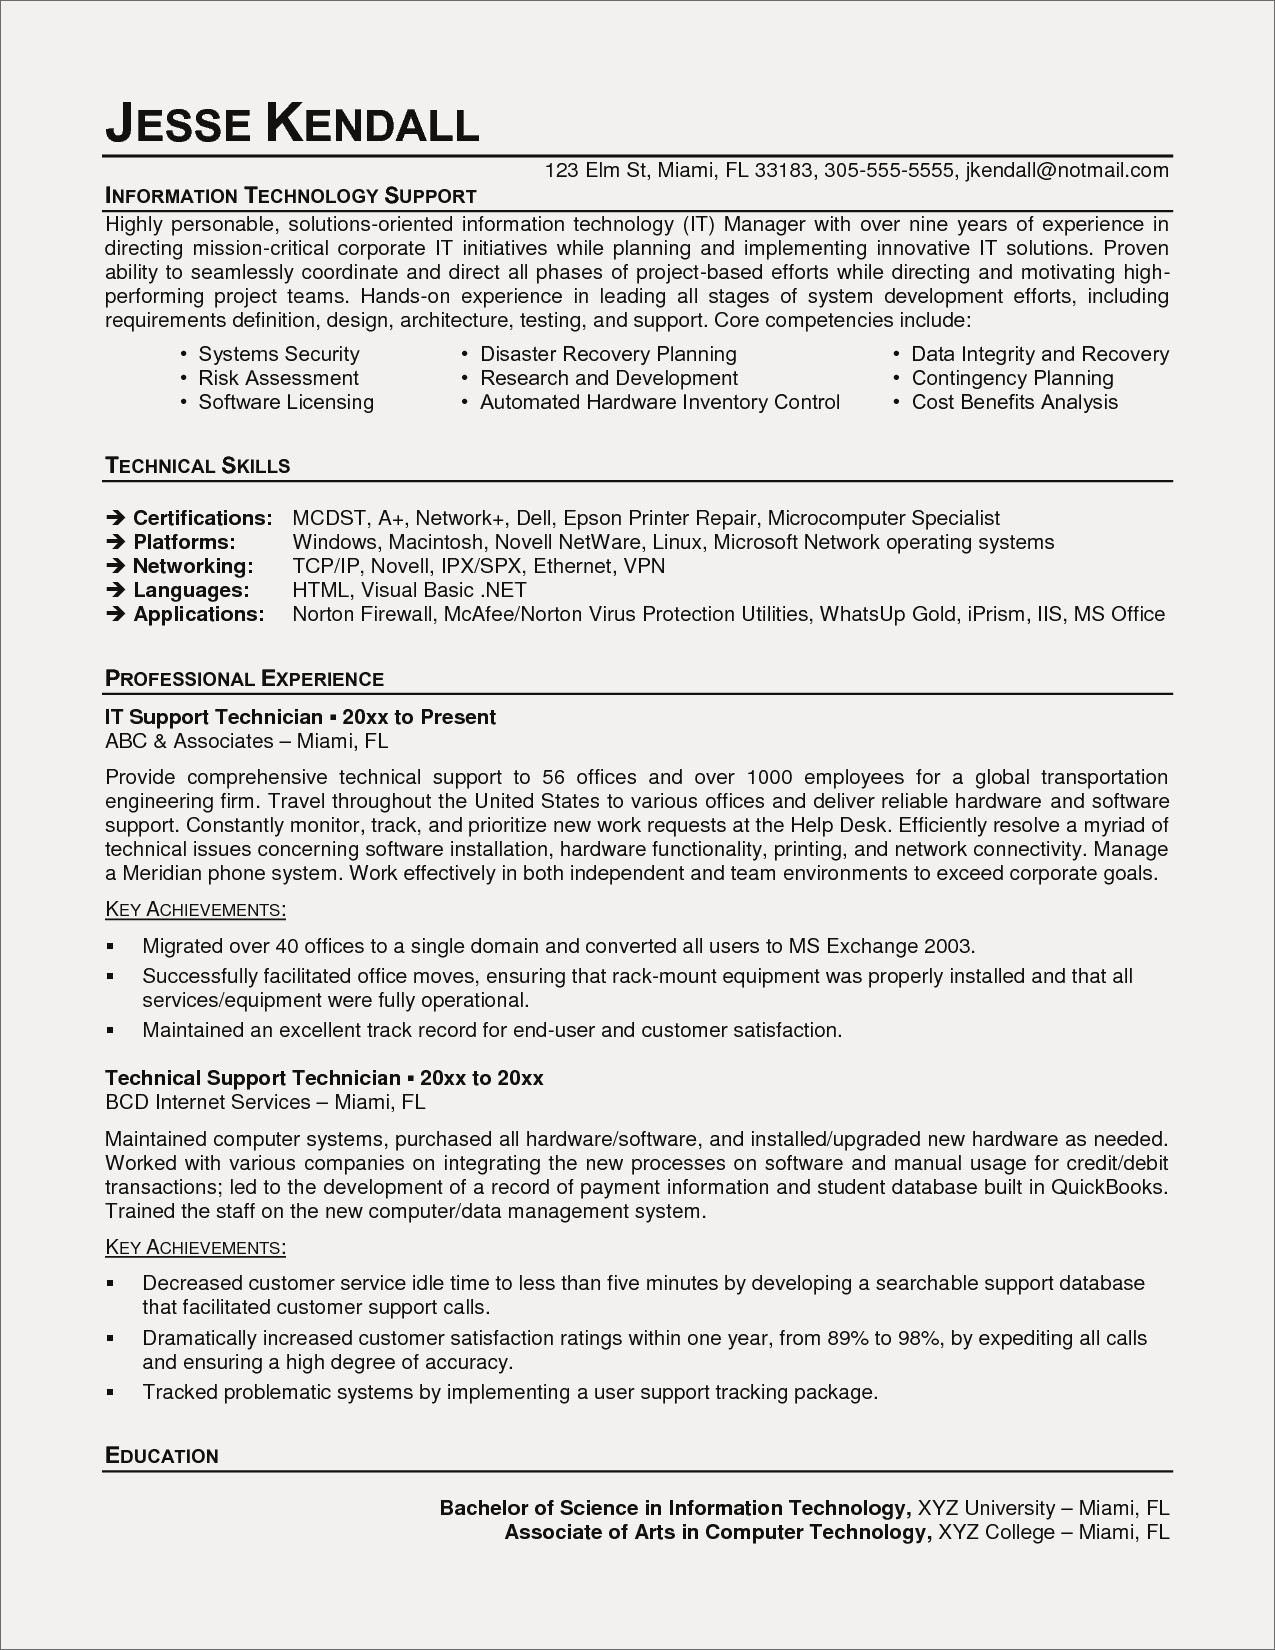 diesel auto resume example-Auto Mechanic Resume American Resume Sample New Student Resume 0d 17-a